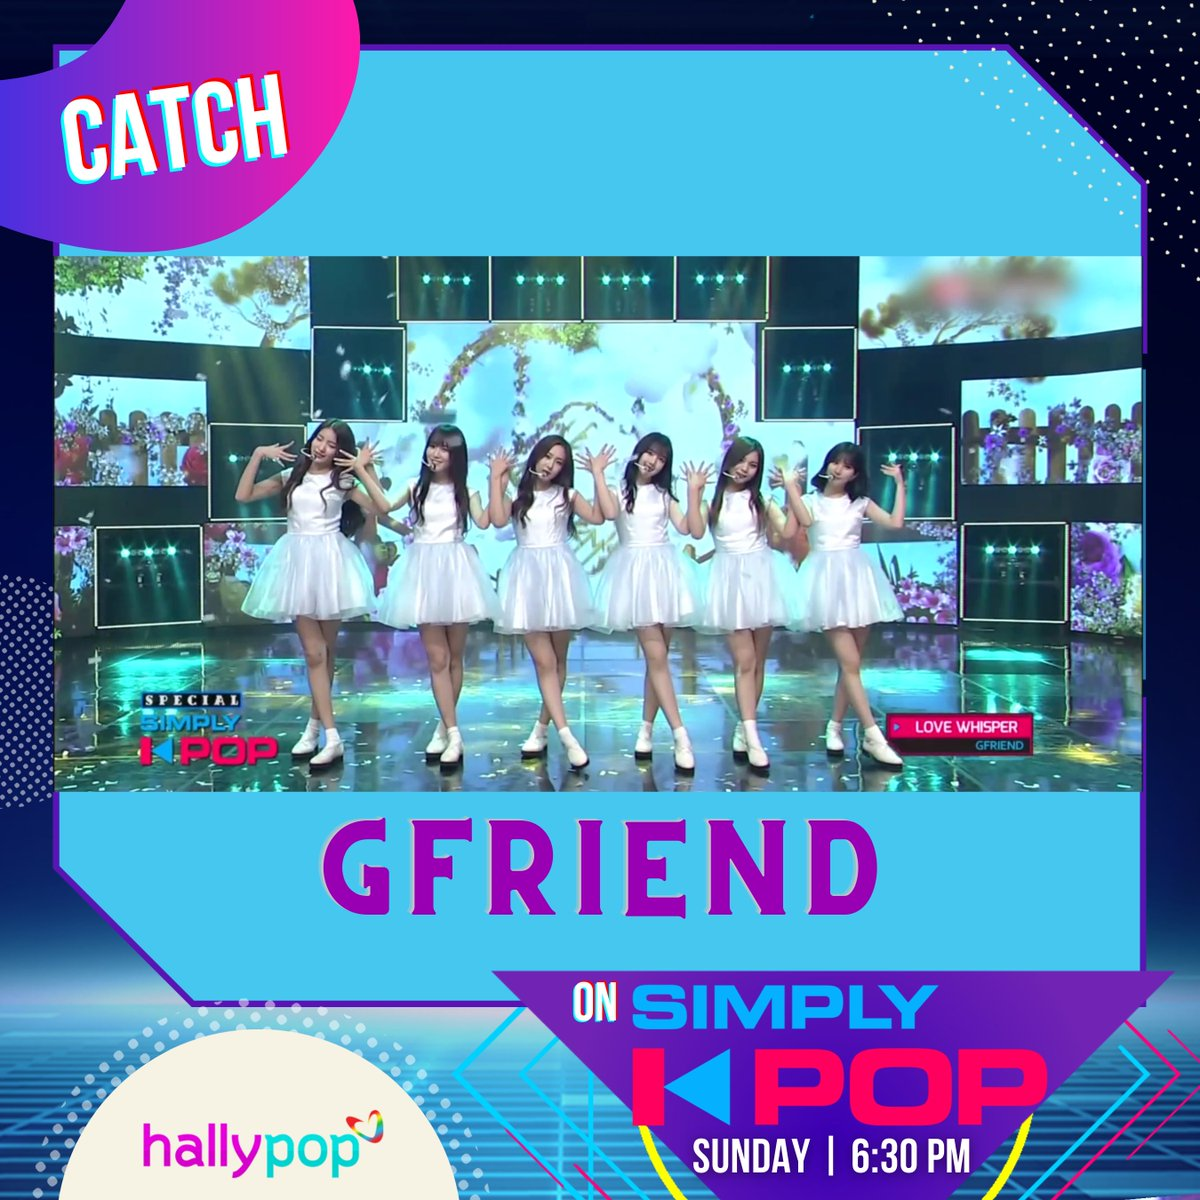 Talent overload! Catch GFRIEND later on #SimplyKPop!